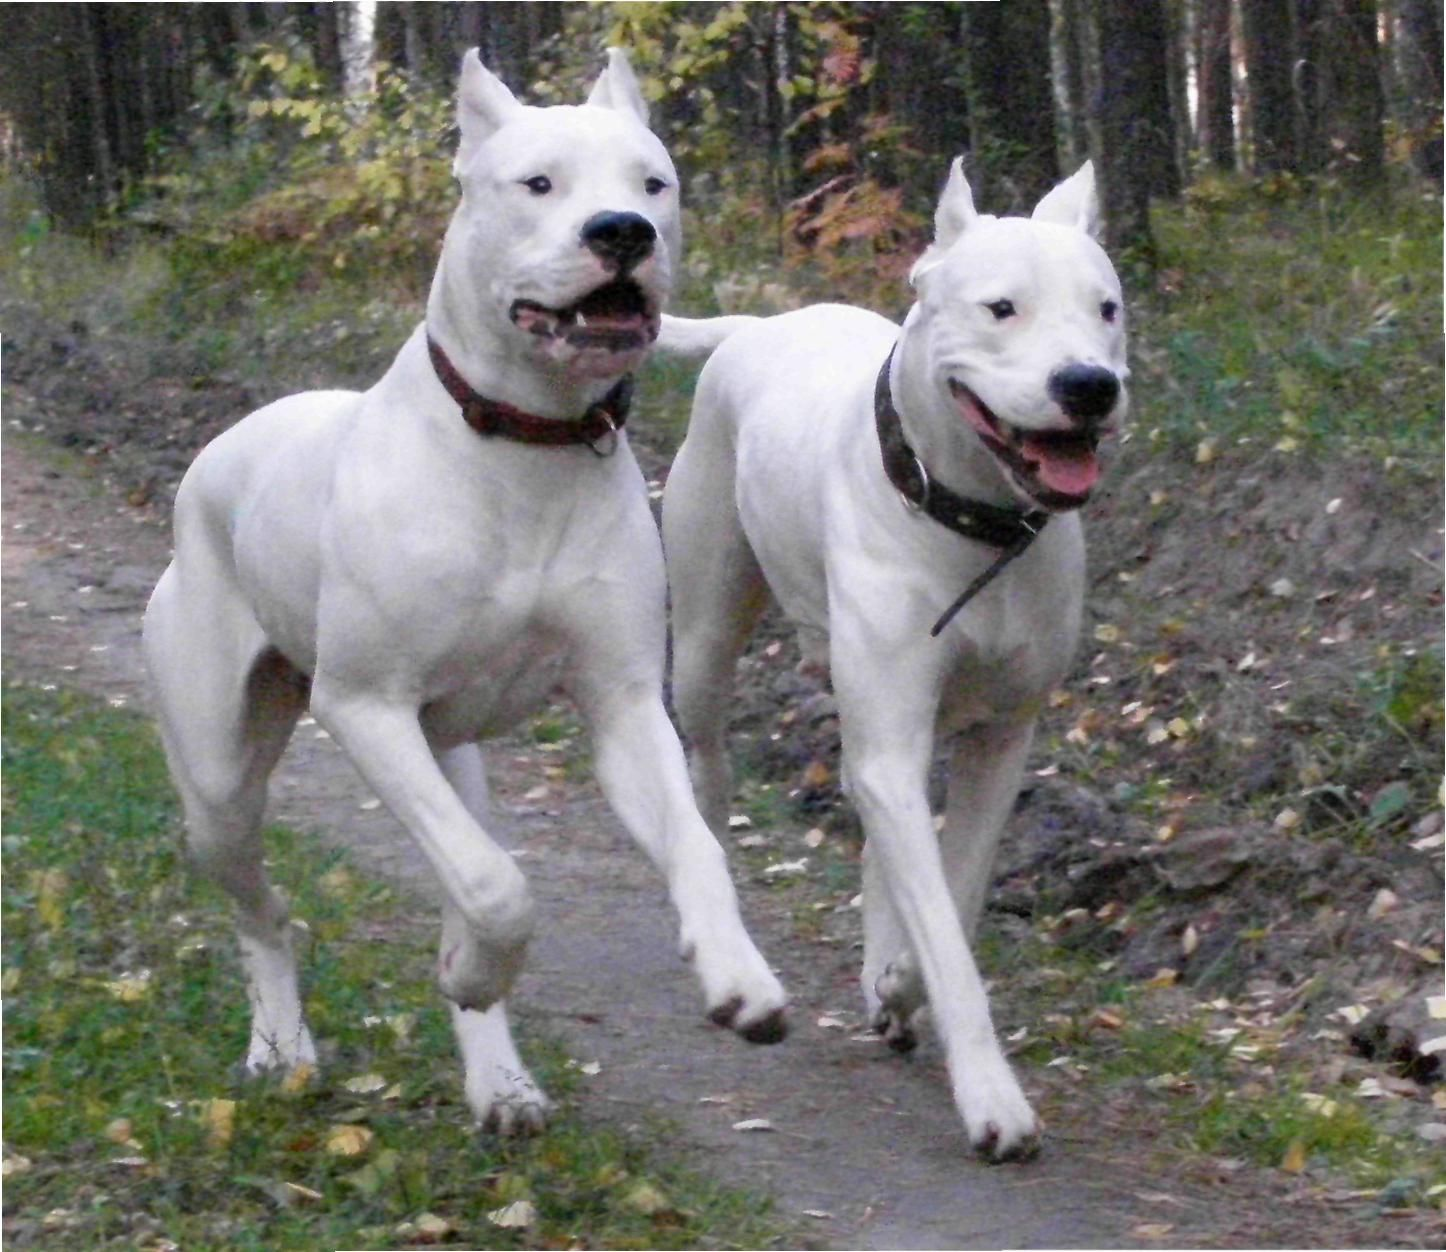 Dogo Argentino Dogs Dog Argentino Dogs And Puppies